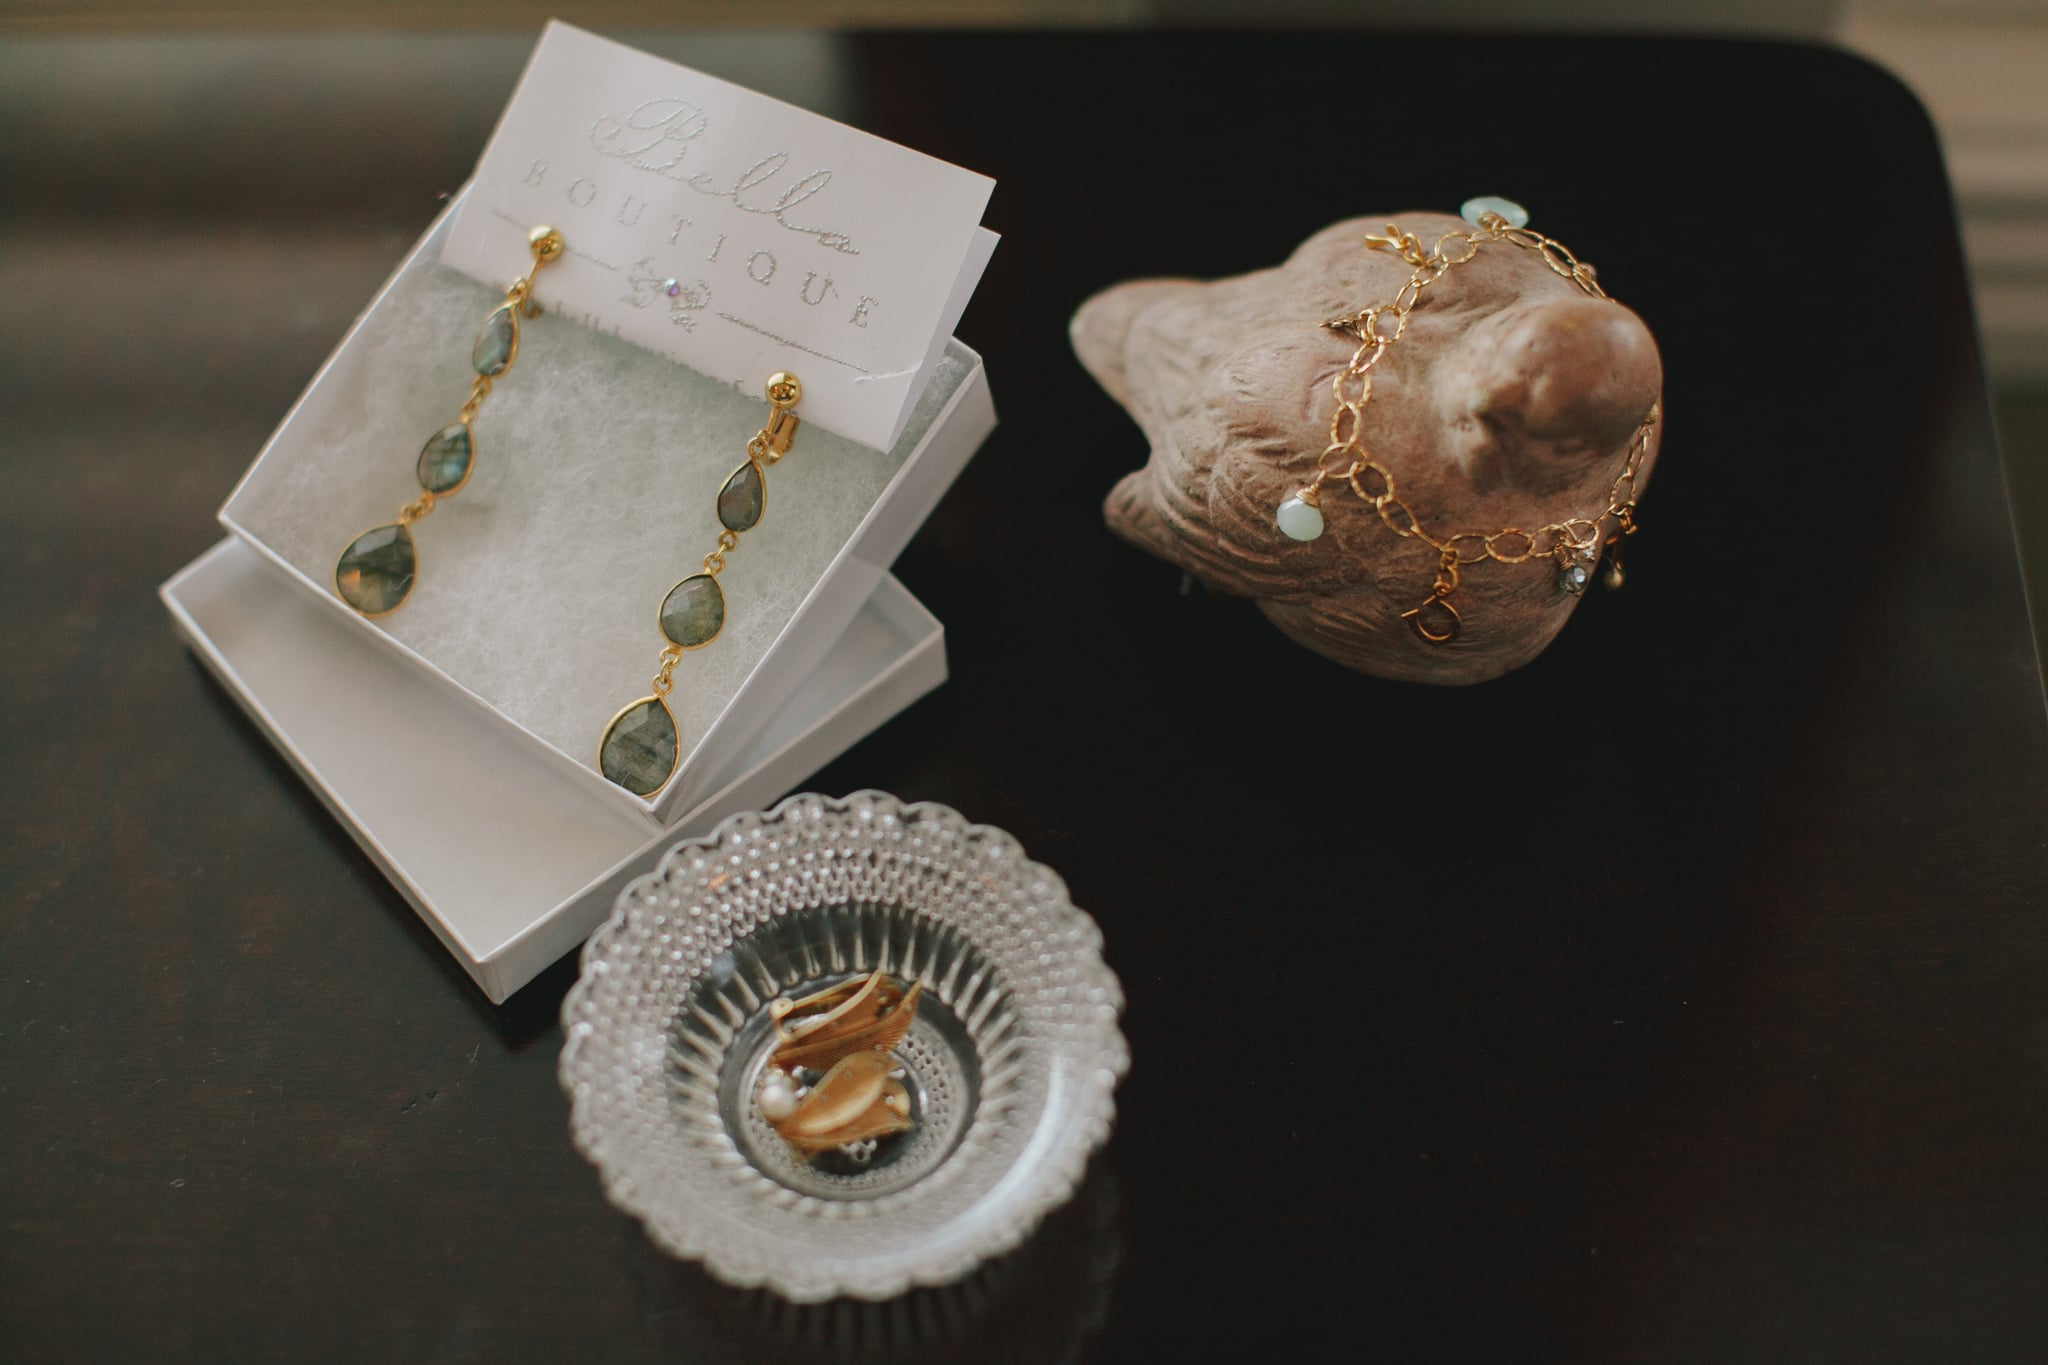 The bride and bridesmaids' jewelry was made by hand from the ladies at Bella Boutique.